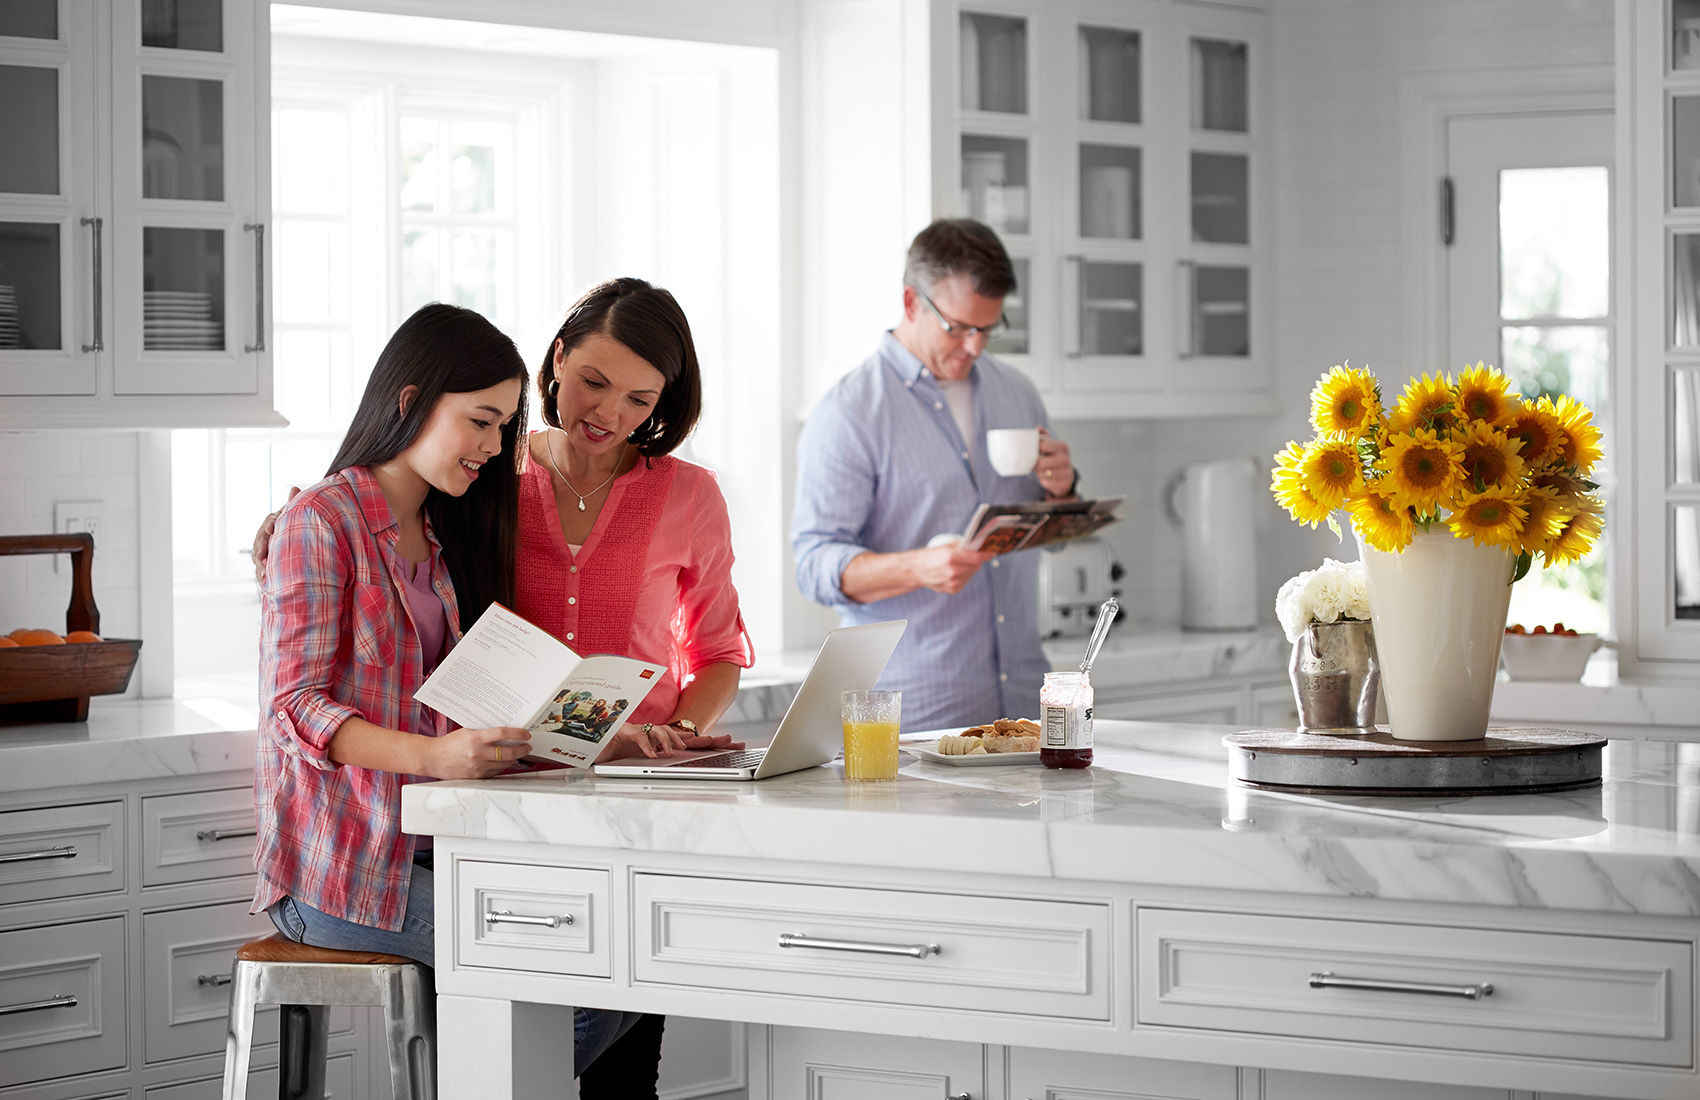 Mother and teen daughter looking at a Wells Fargo brochure in their kitchen; dad in background